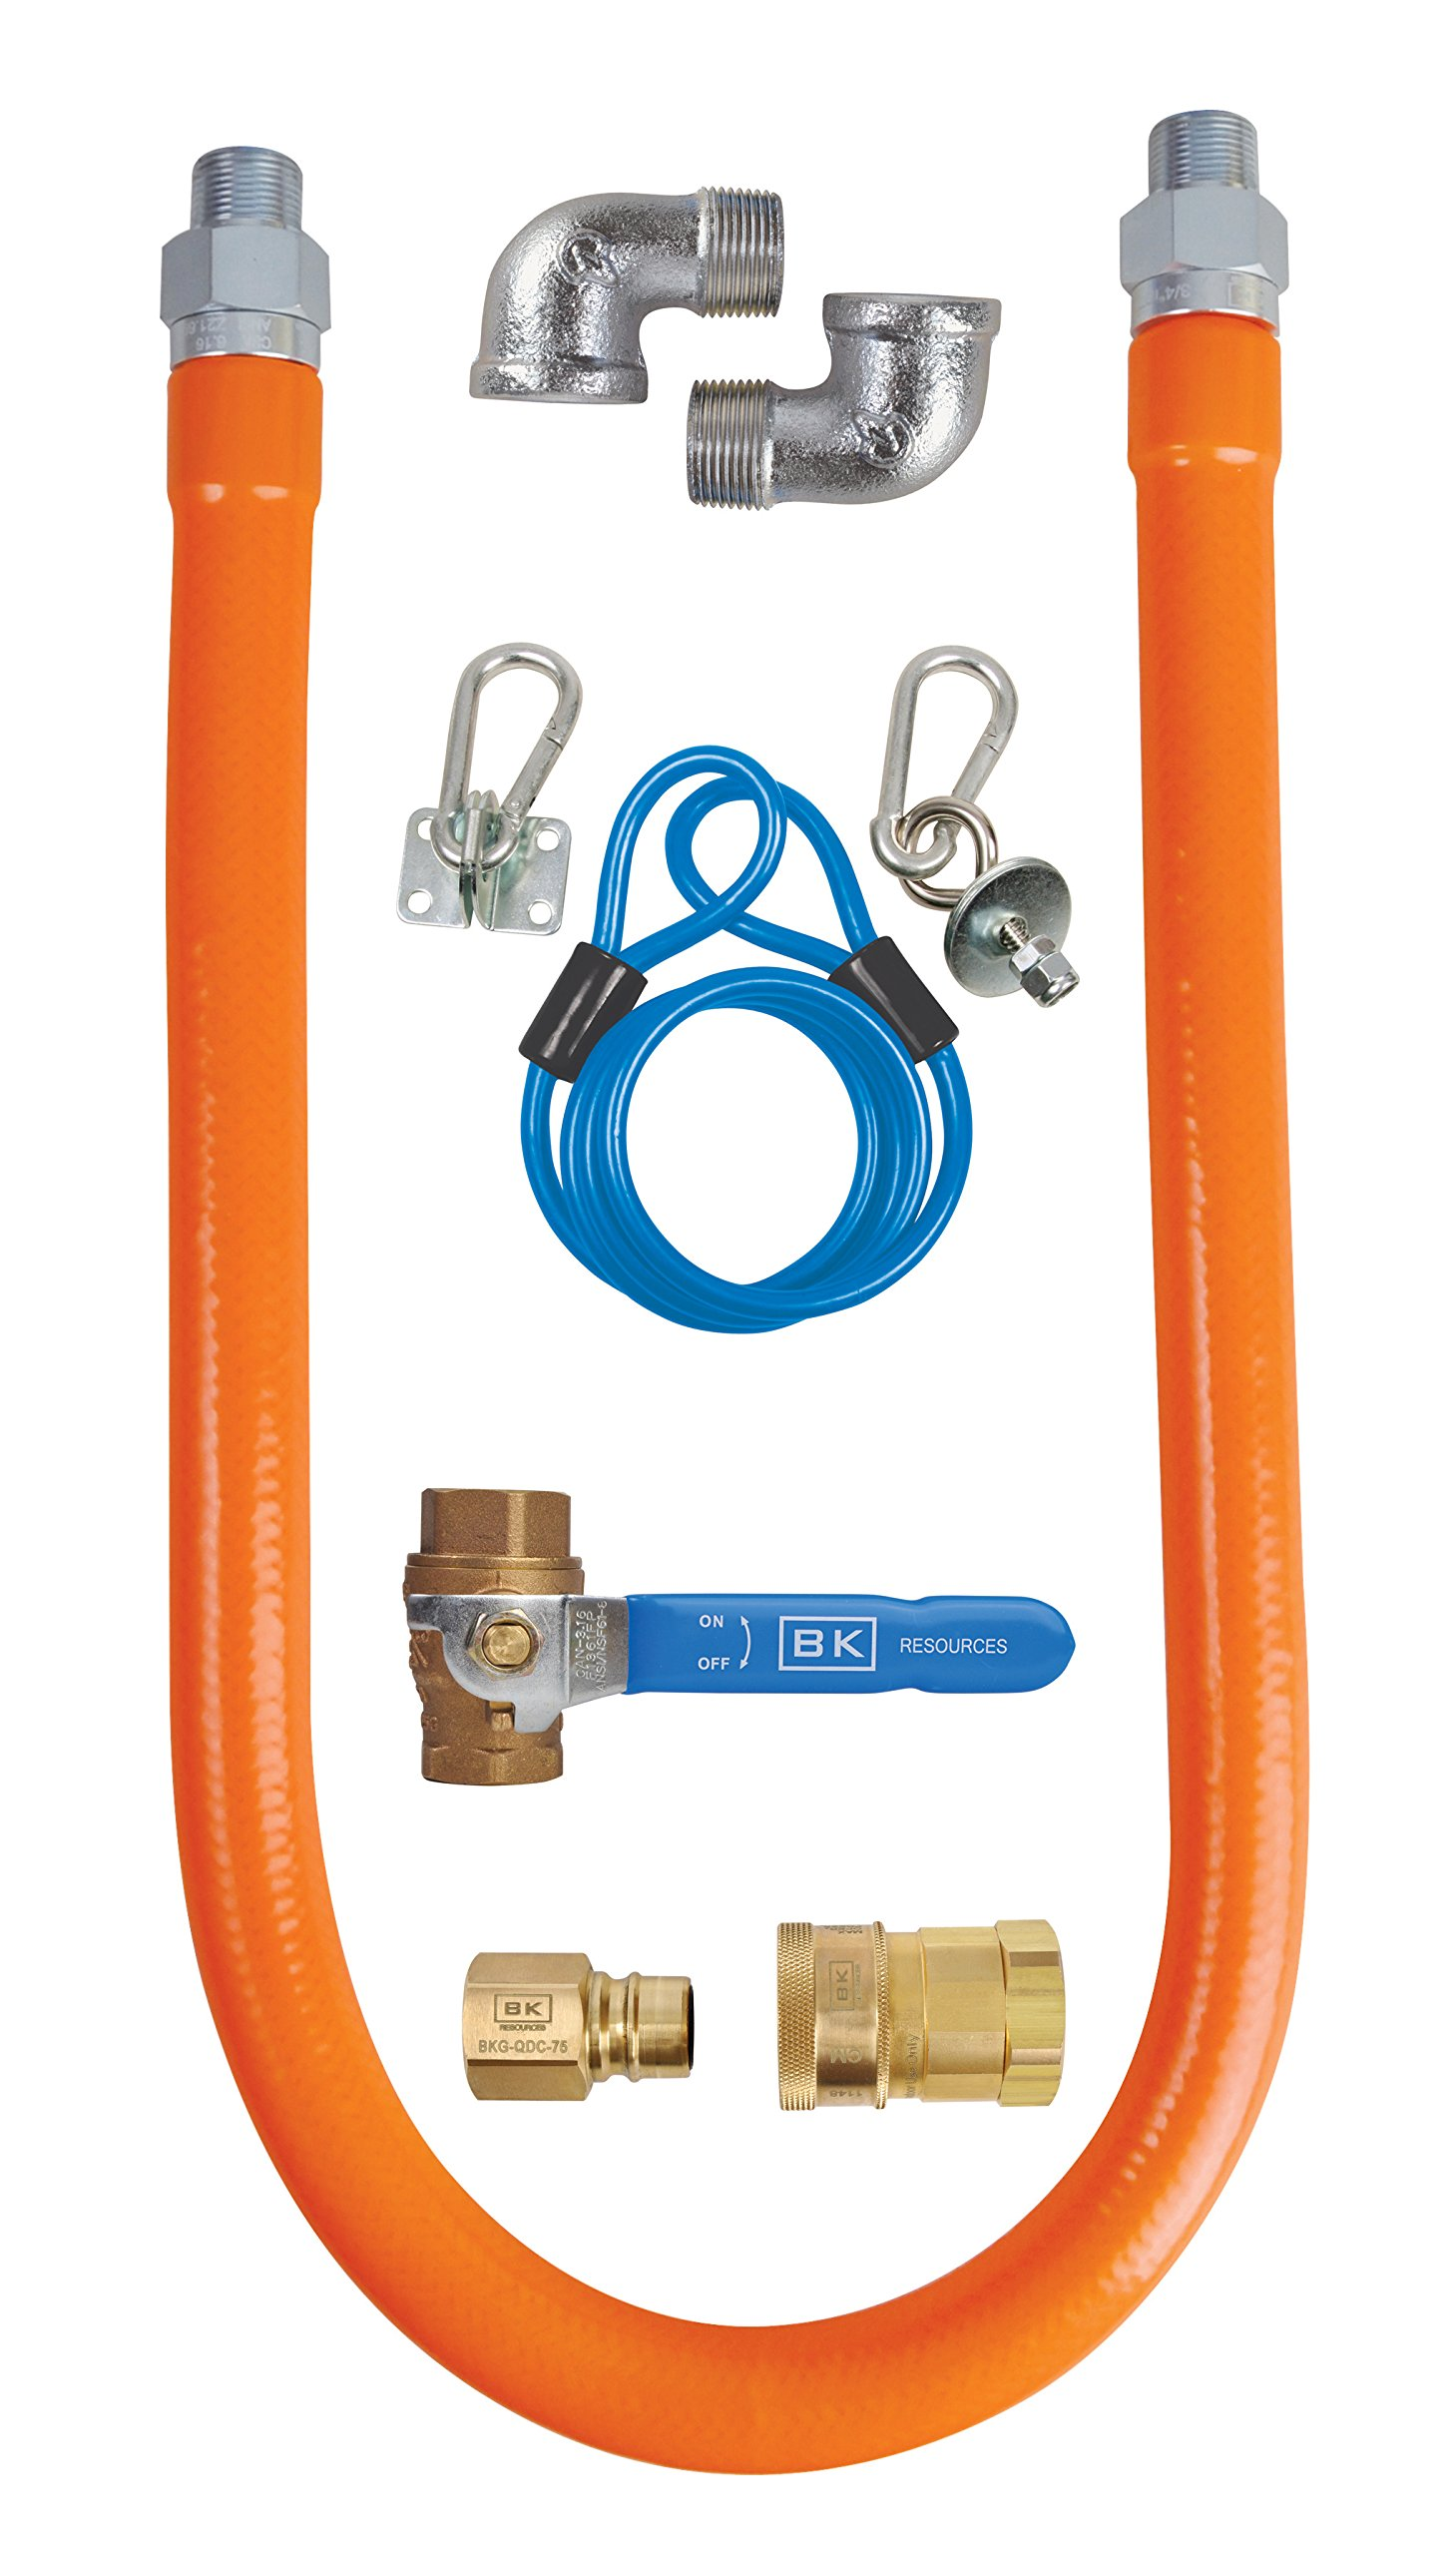 BK Resources Gas Hose Connection Kit #3 with Accessories, 1/2 Inch Diameter, 48 Inch Long Hose